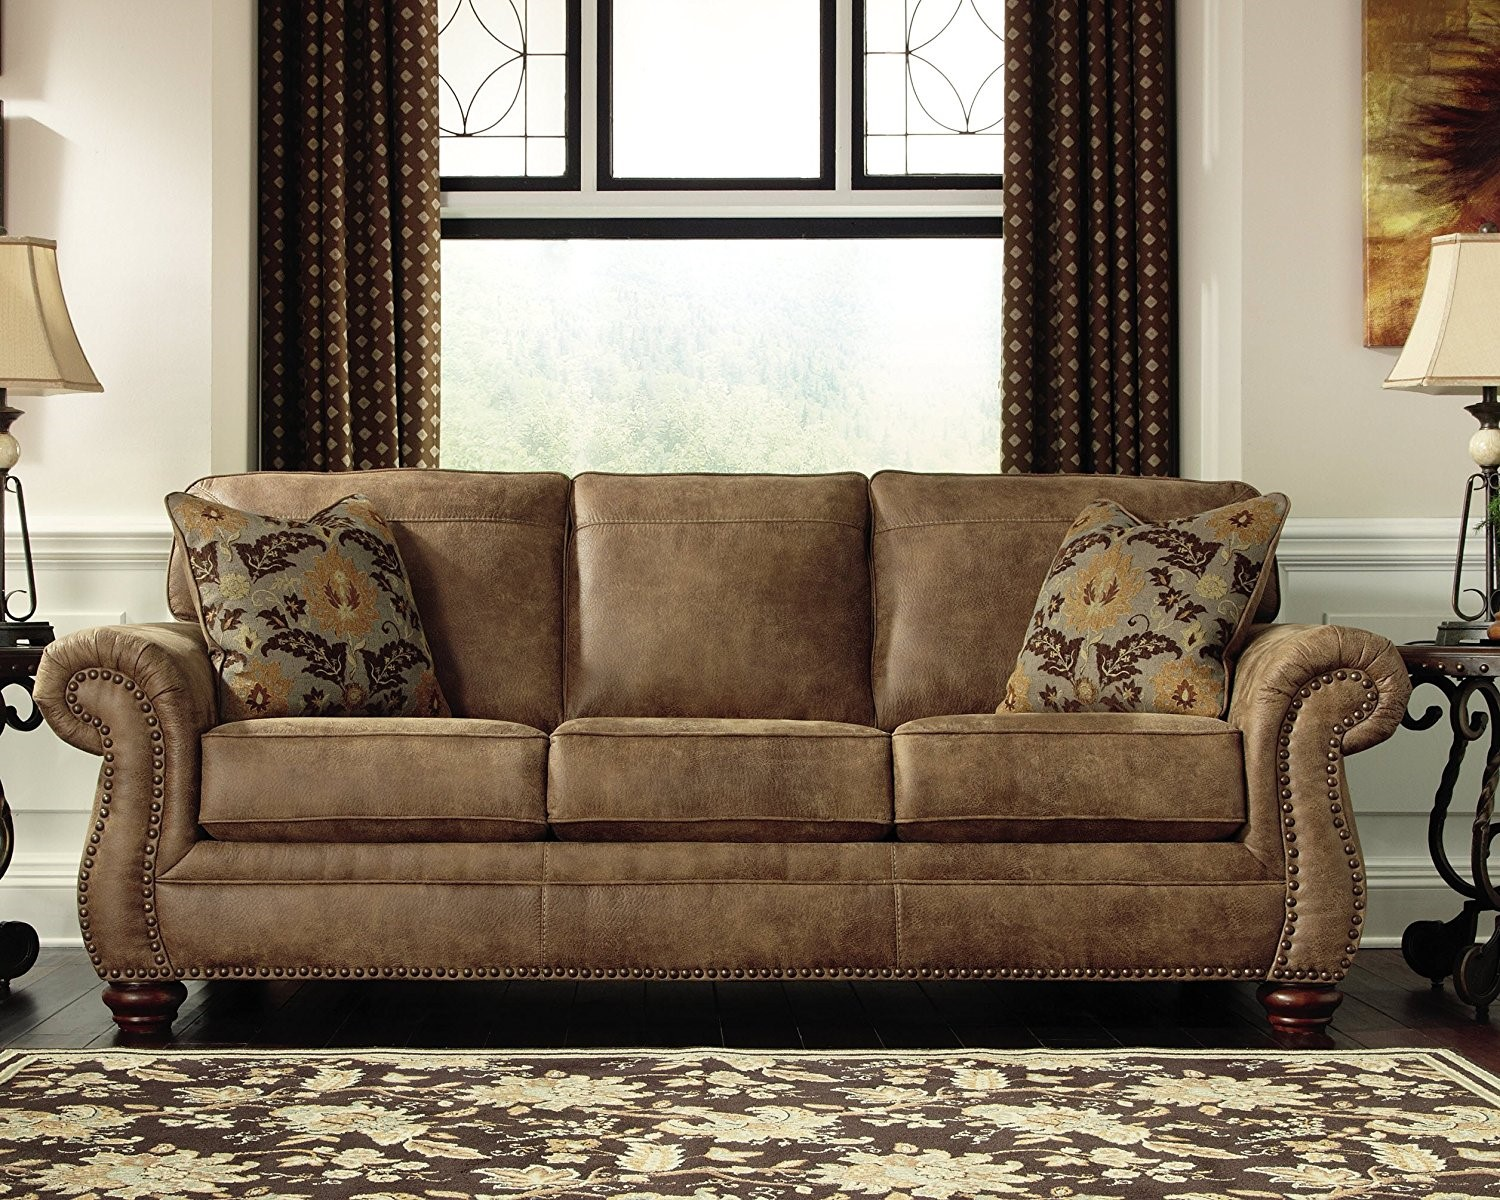 ashley furniture sectional sofa reviews simmons reclining best sleeper with signature design